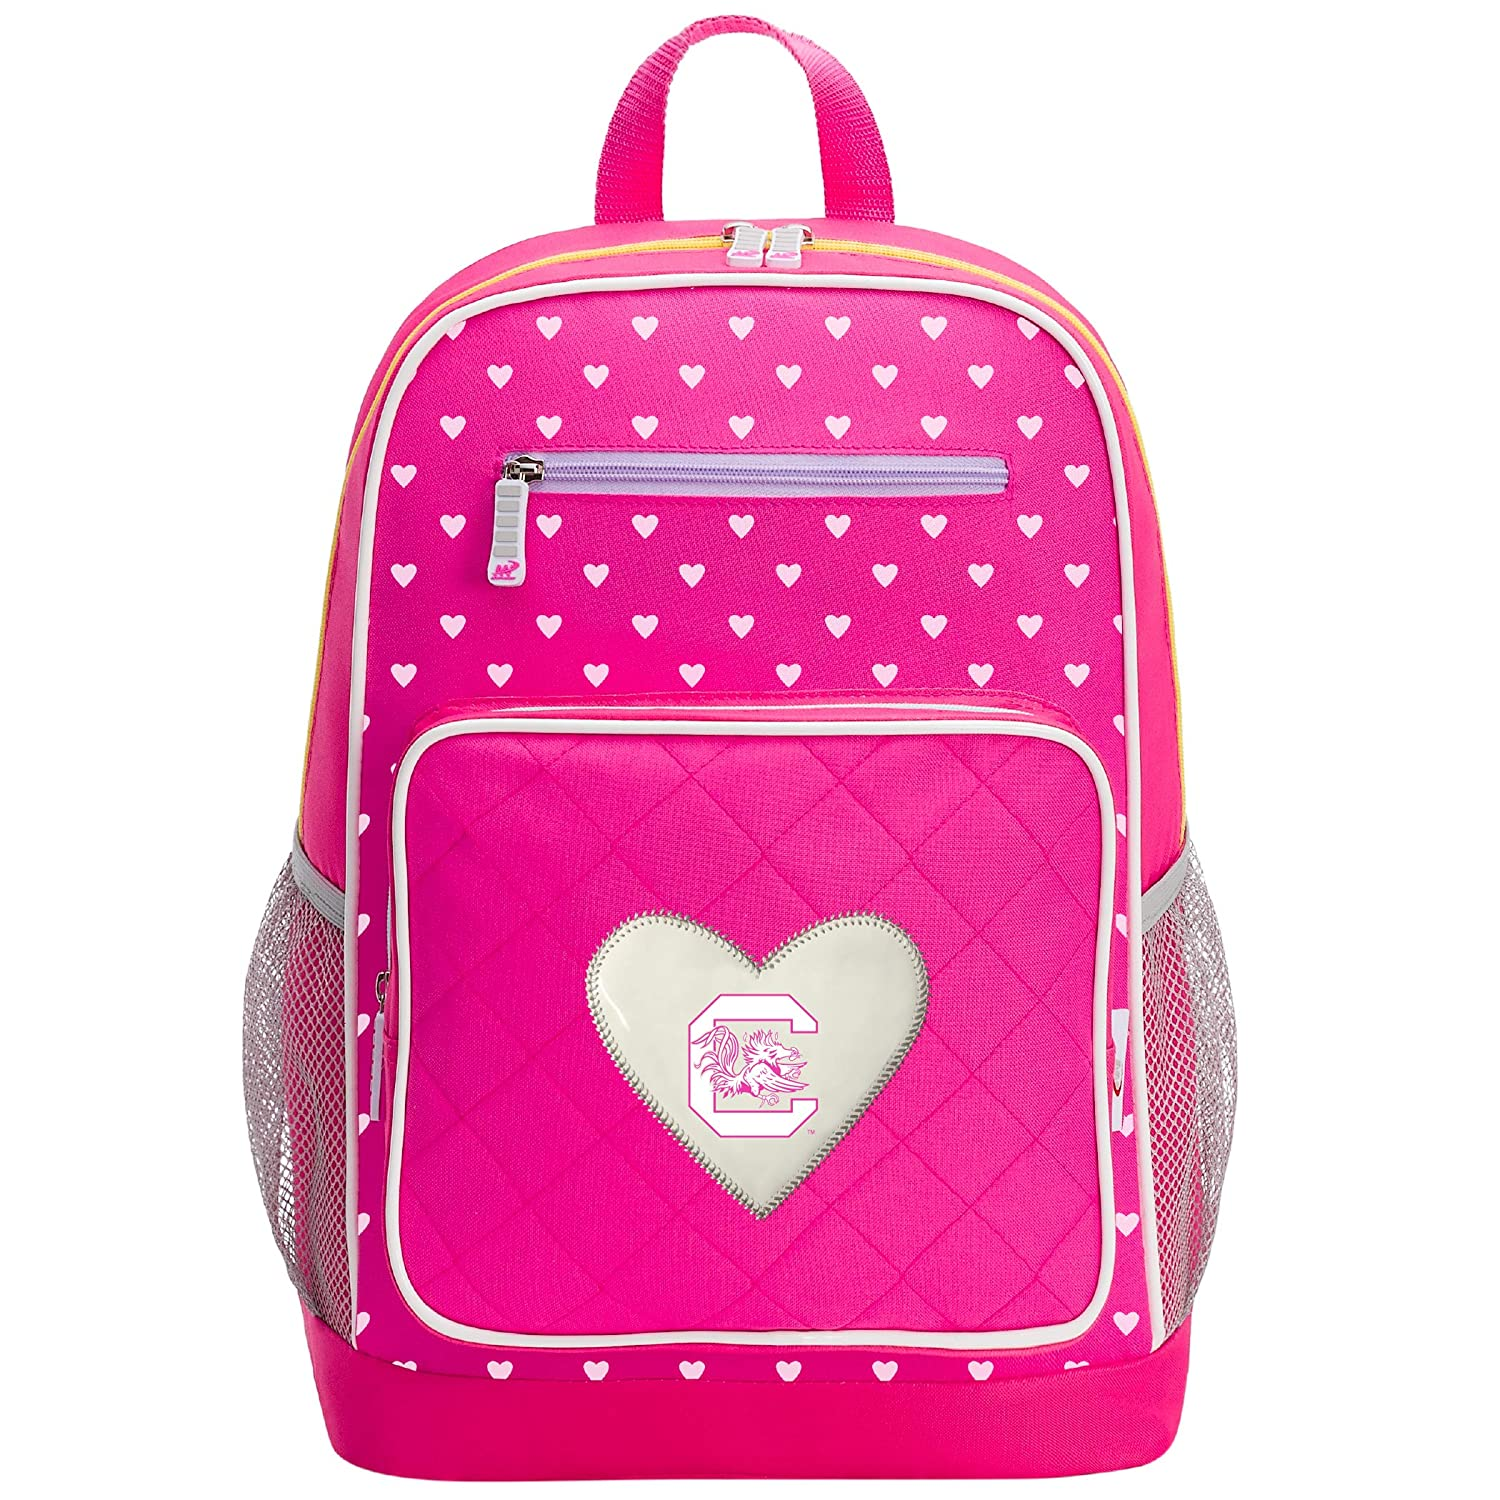 18 Officially Licensed NCAA Fanclub Backpack Pink